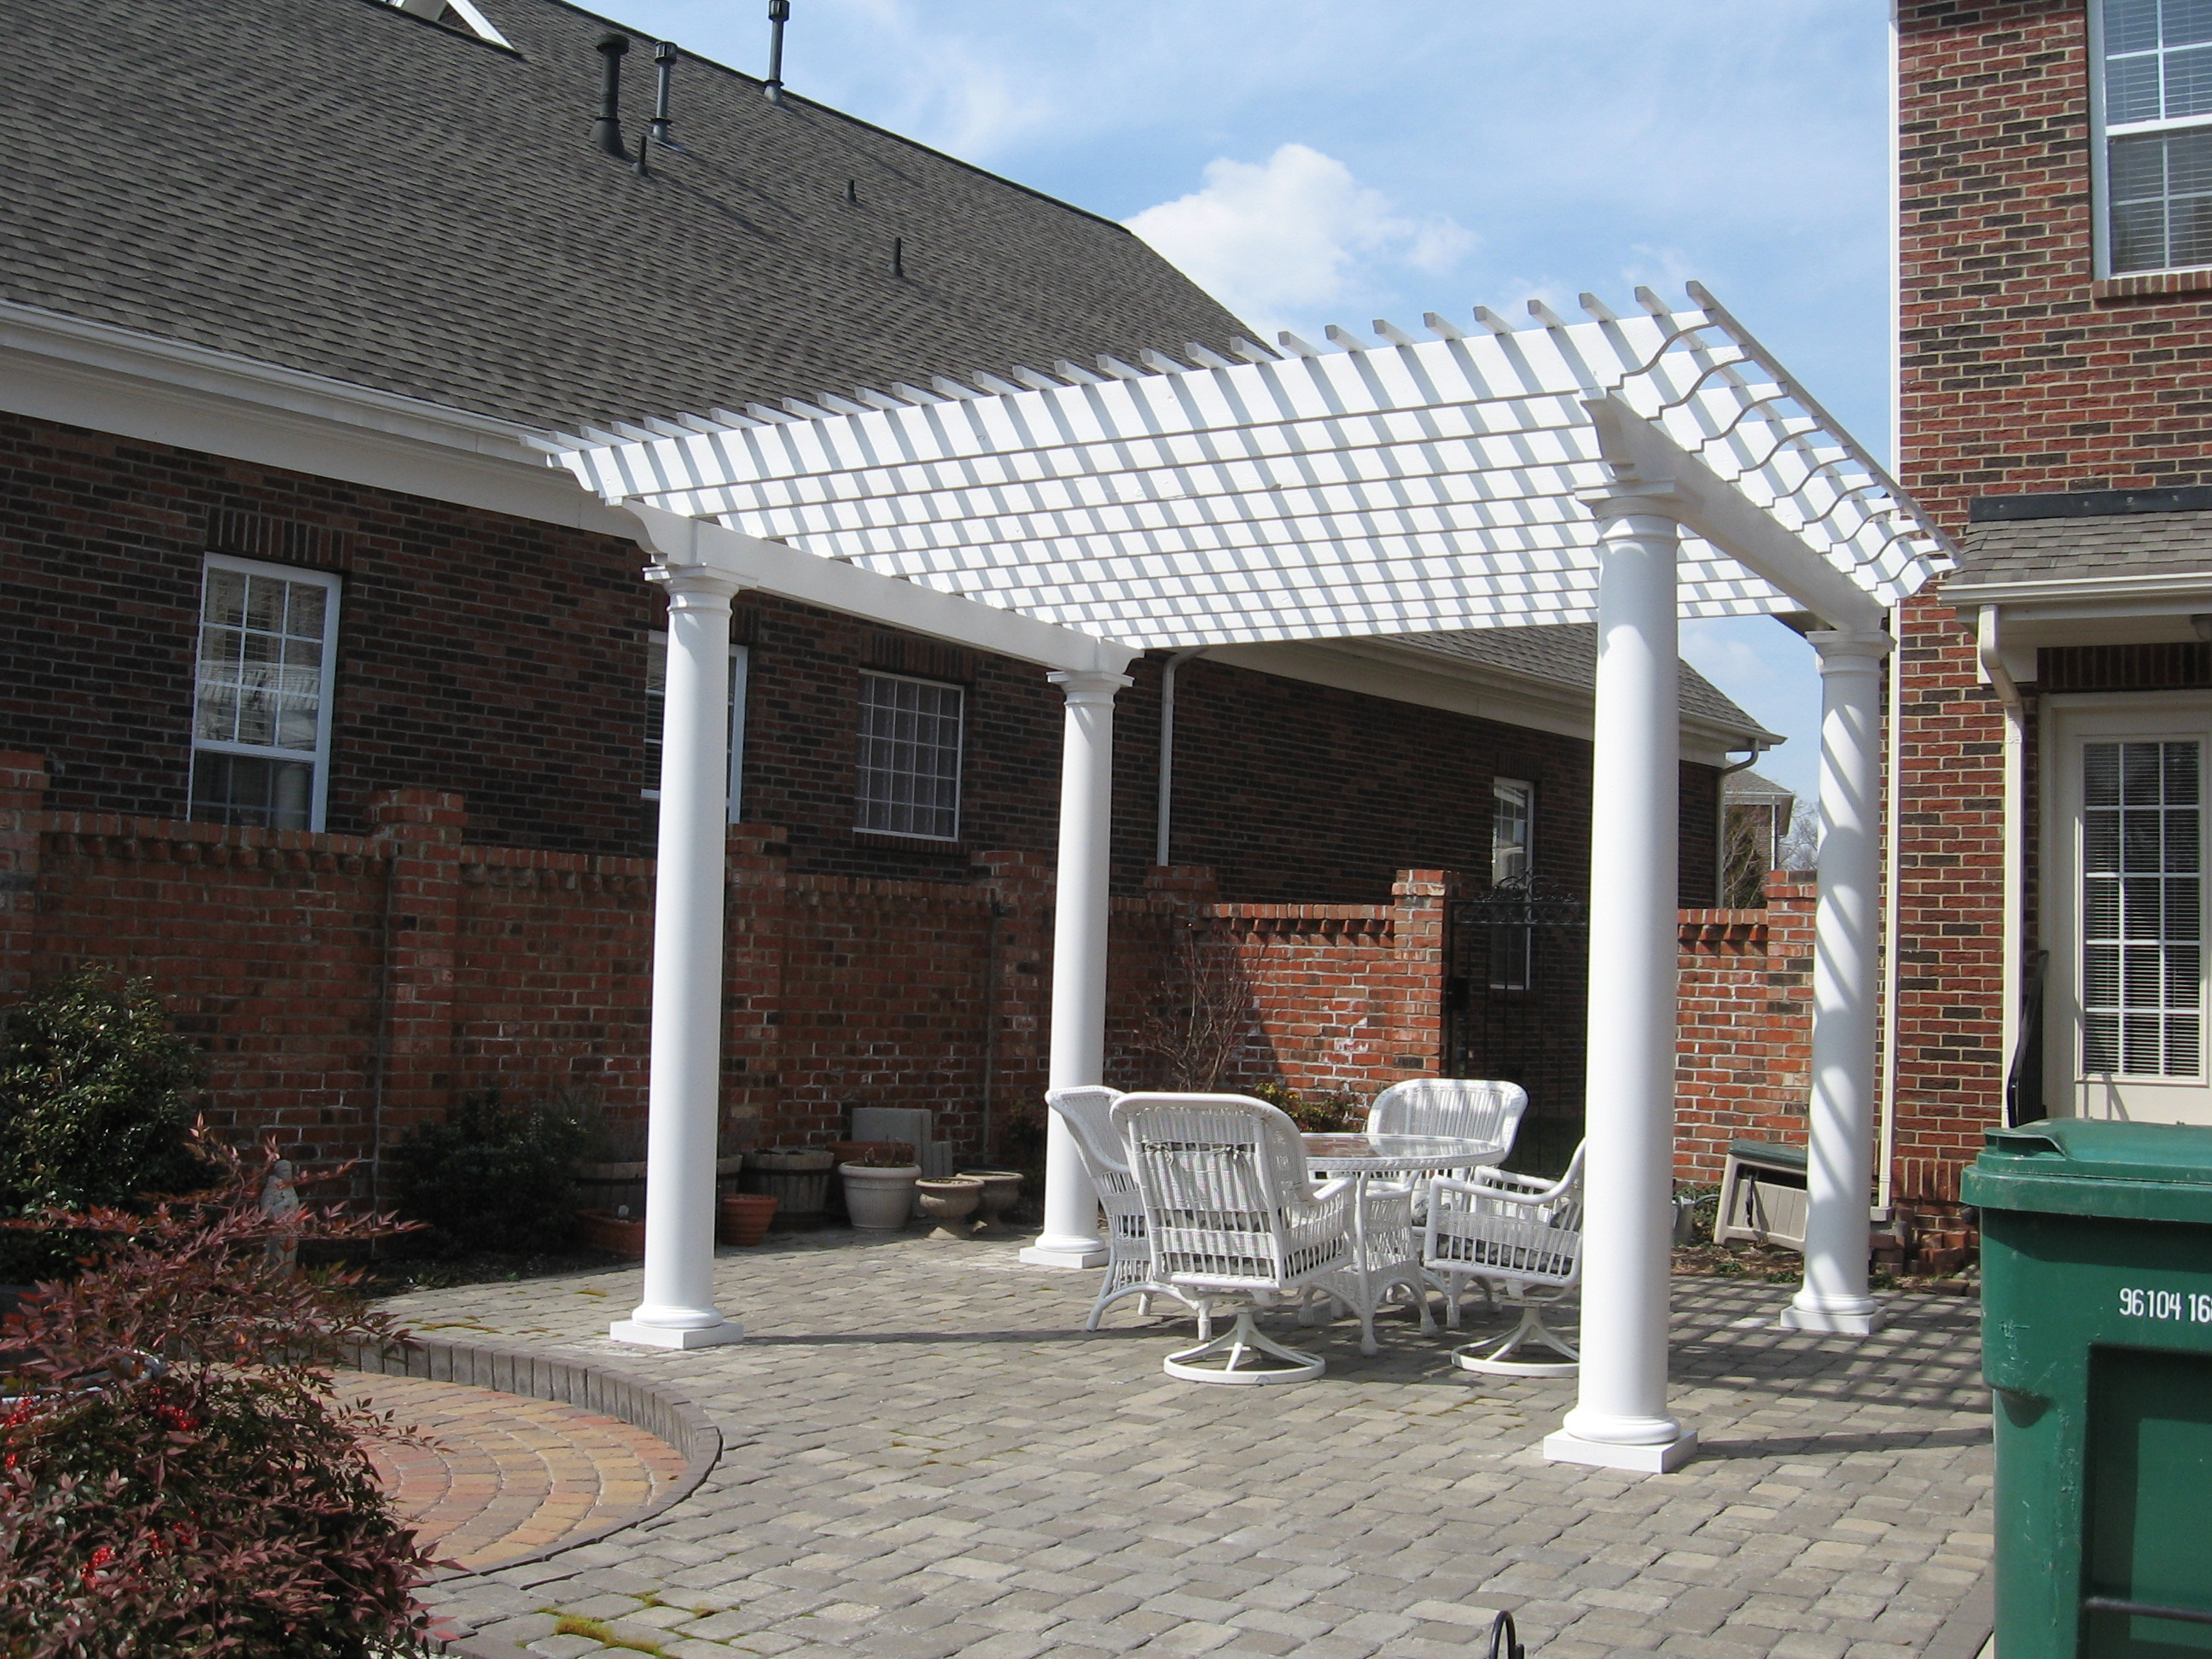 Archadeck Of Charlotte Built This Pergola And Paver Patio